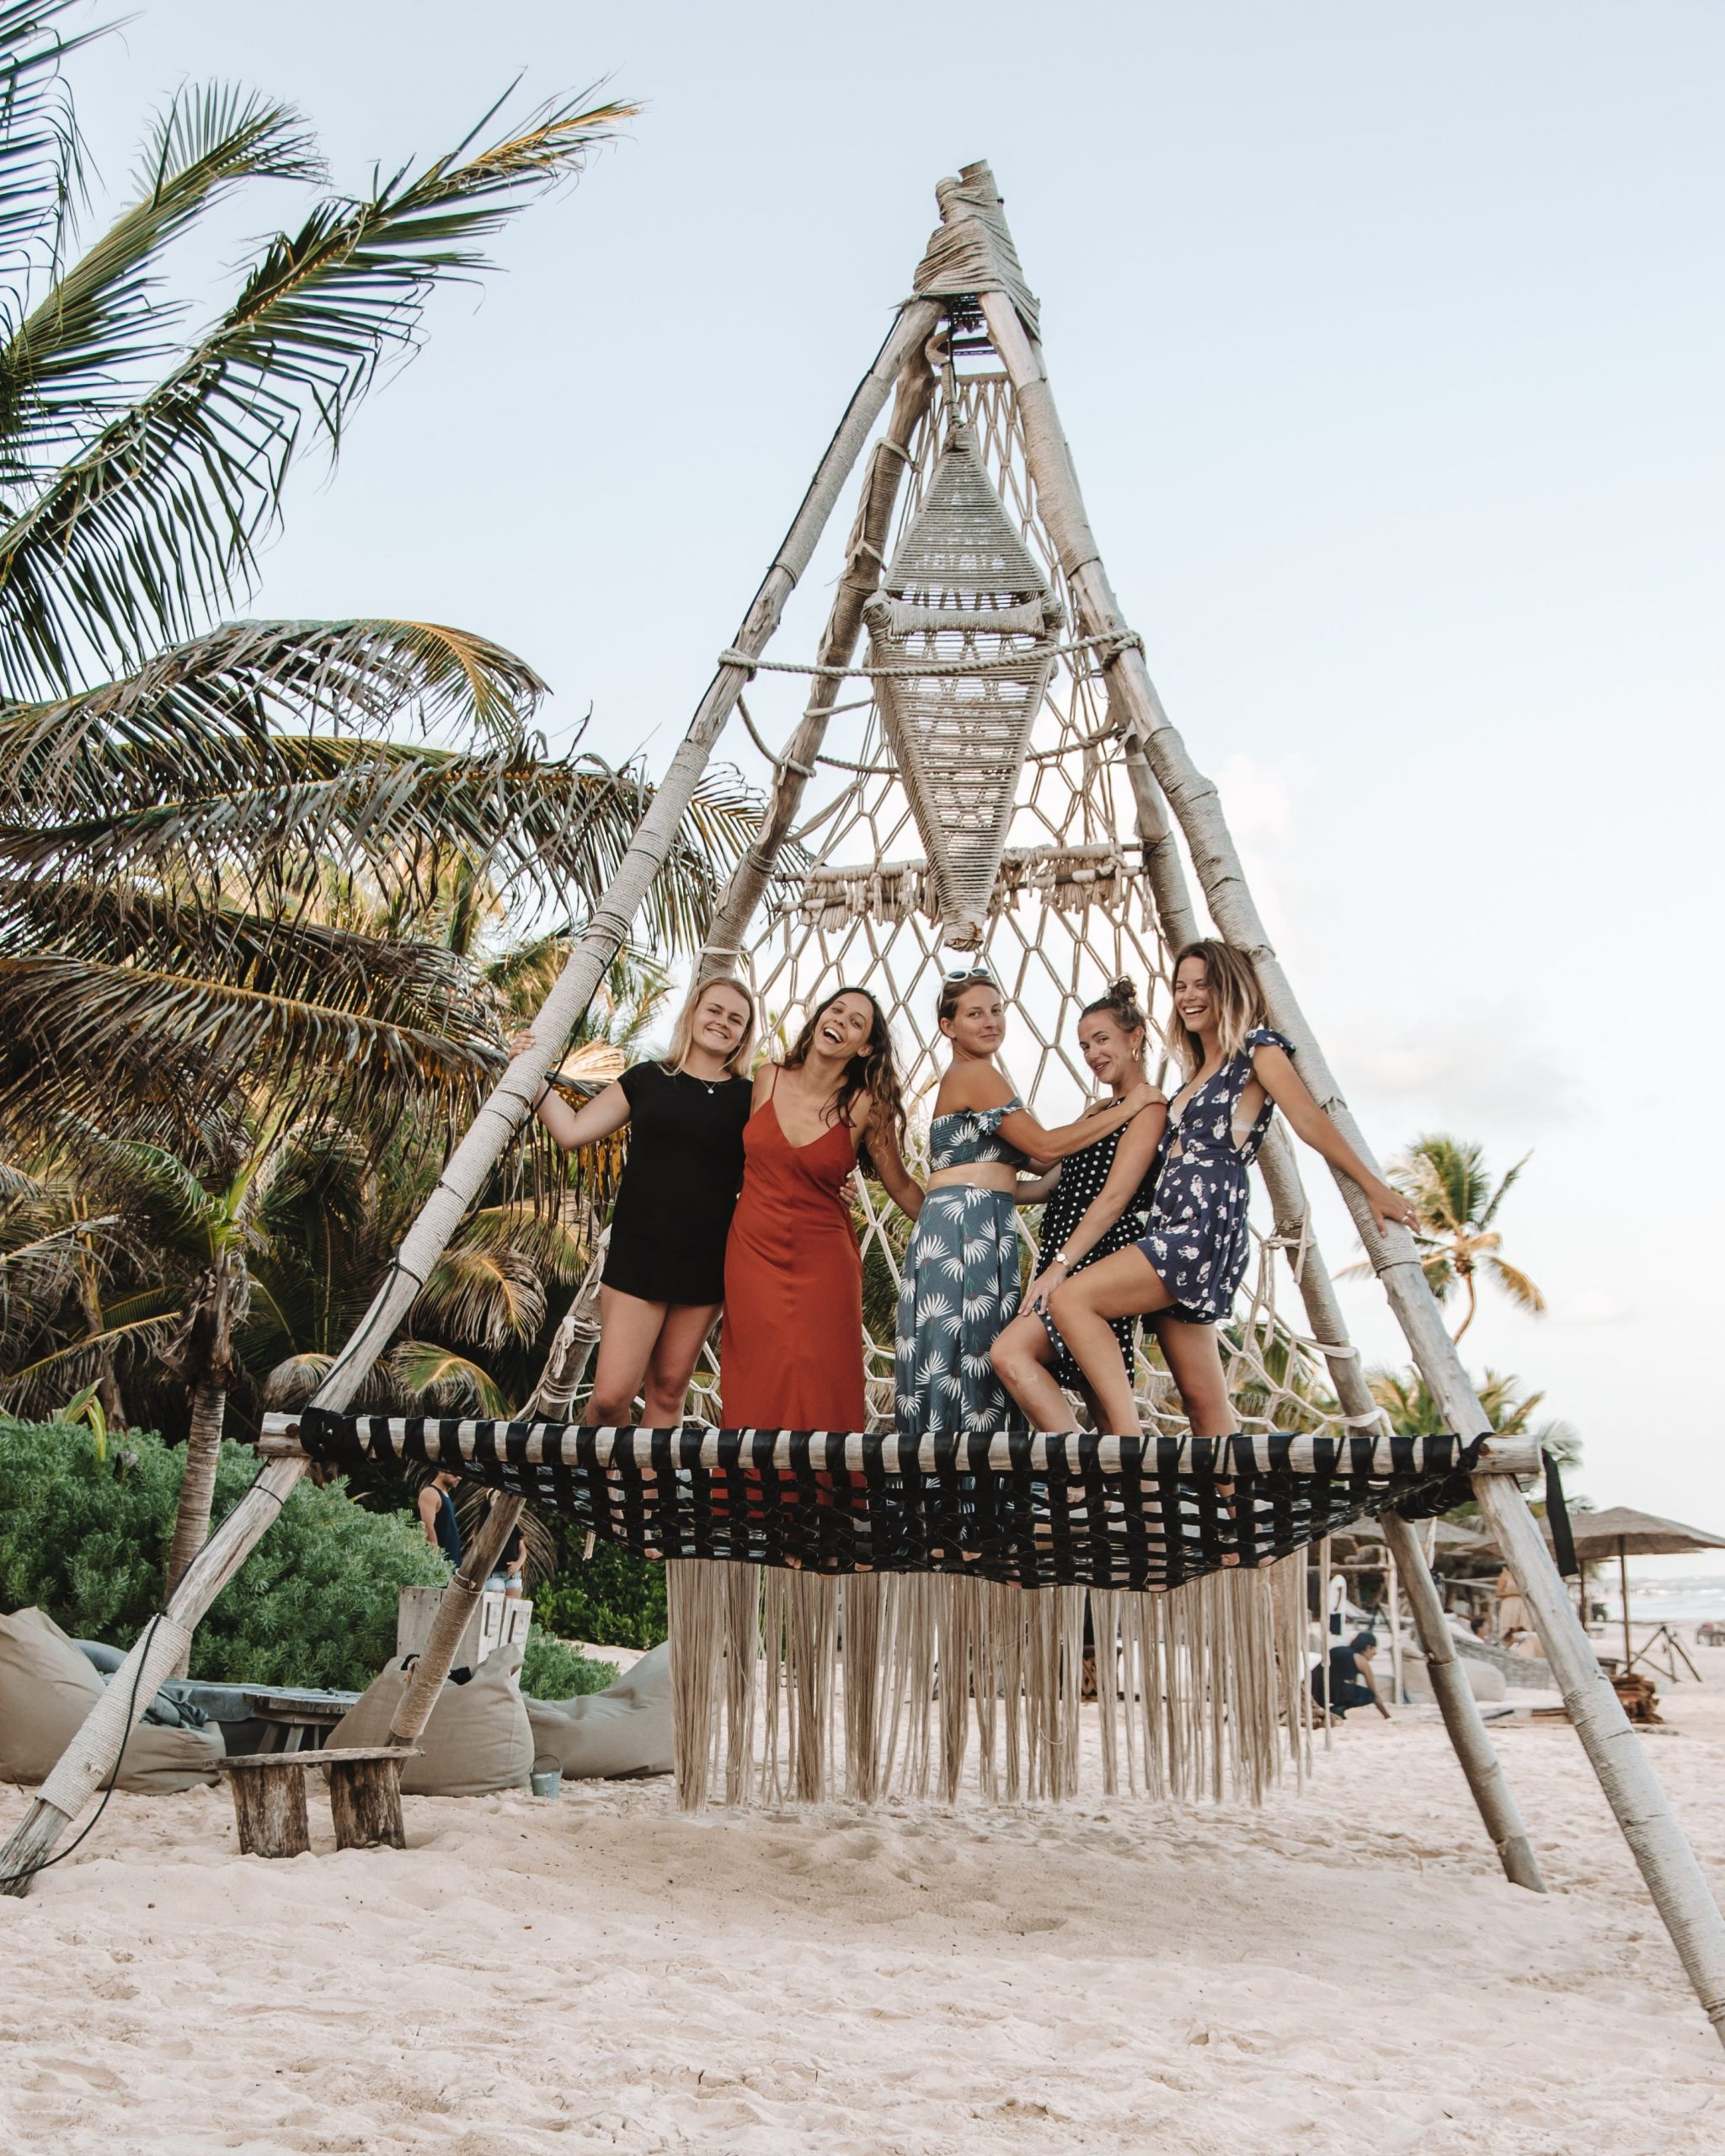 Taverna Trips group trip in Tulum Mexico